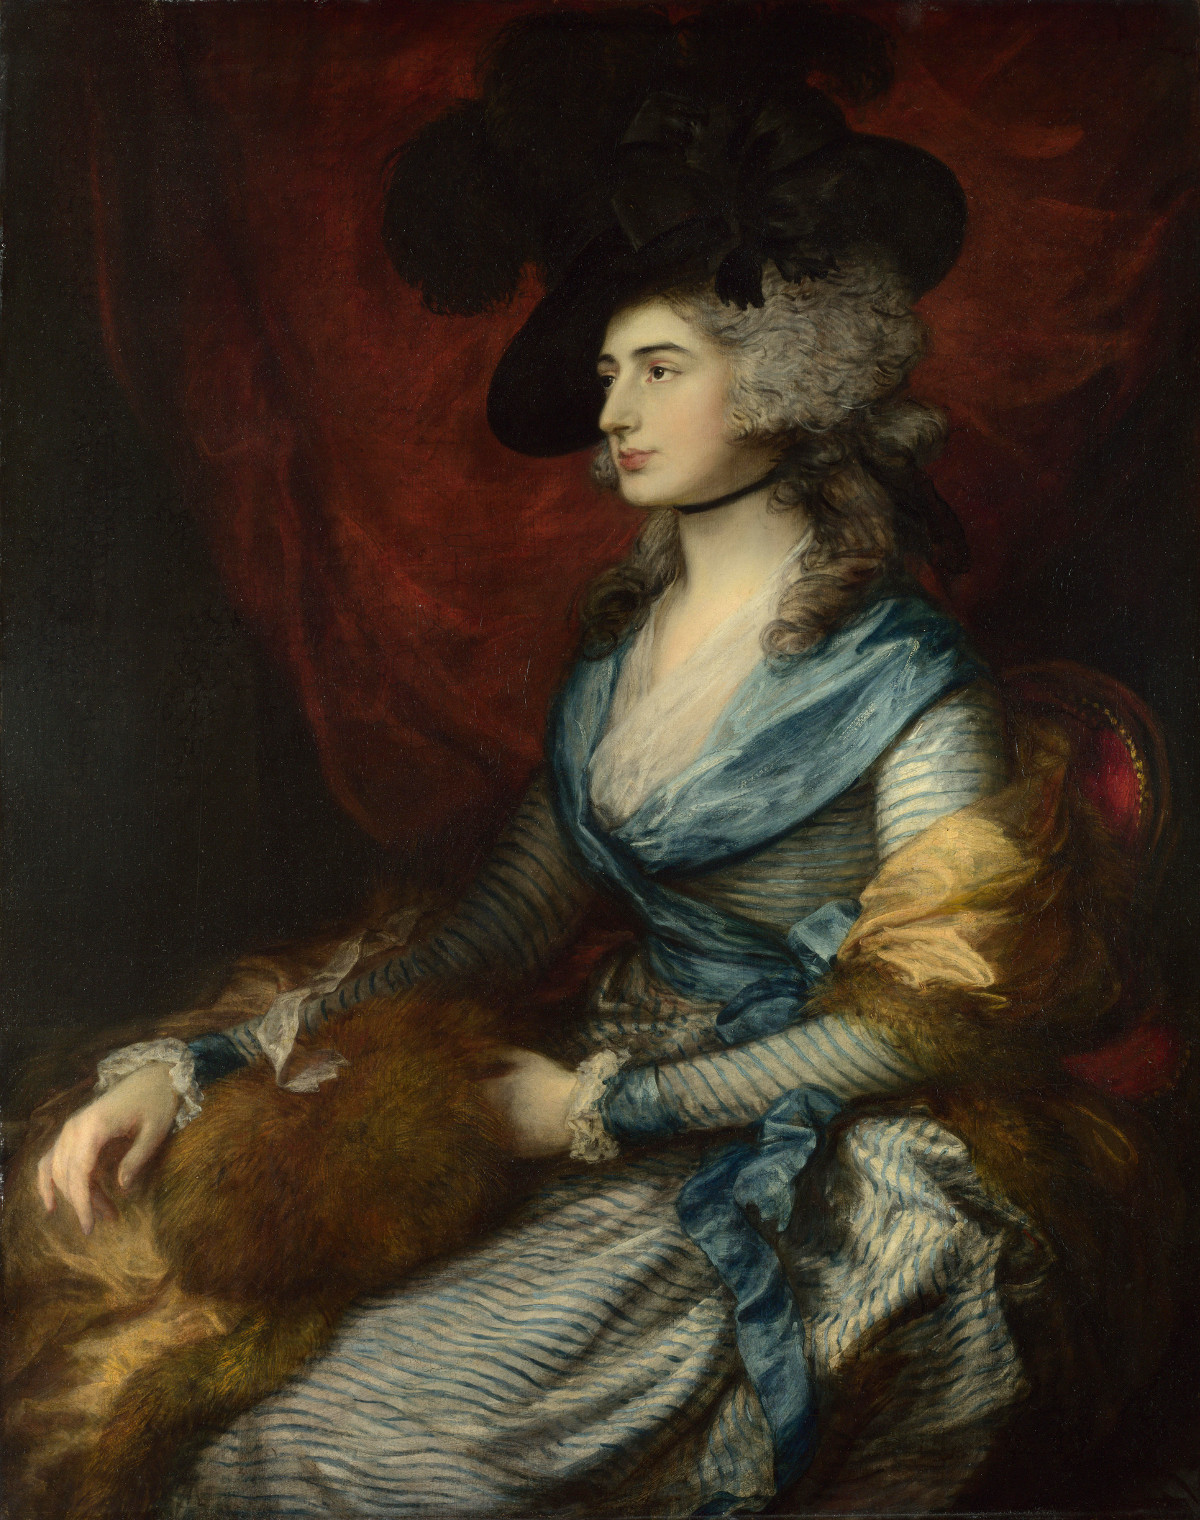 Portrait of Mrs. Sarah Siddons by Thomas Gainsborough, 1785